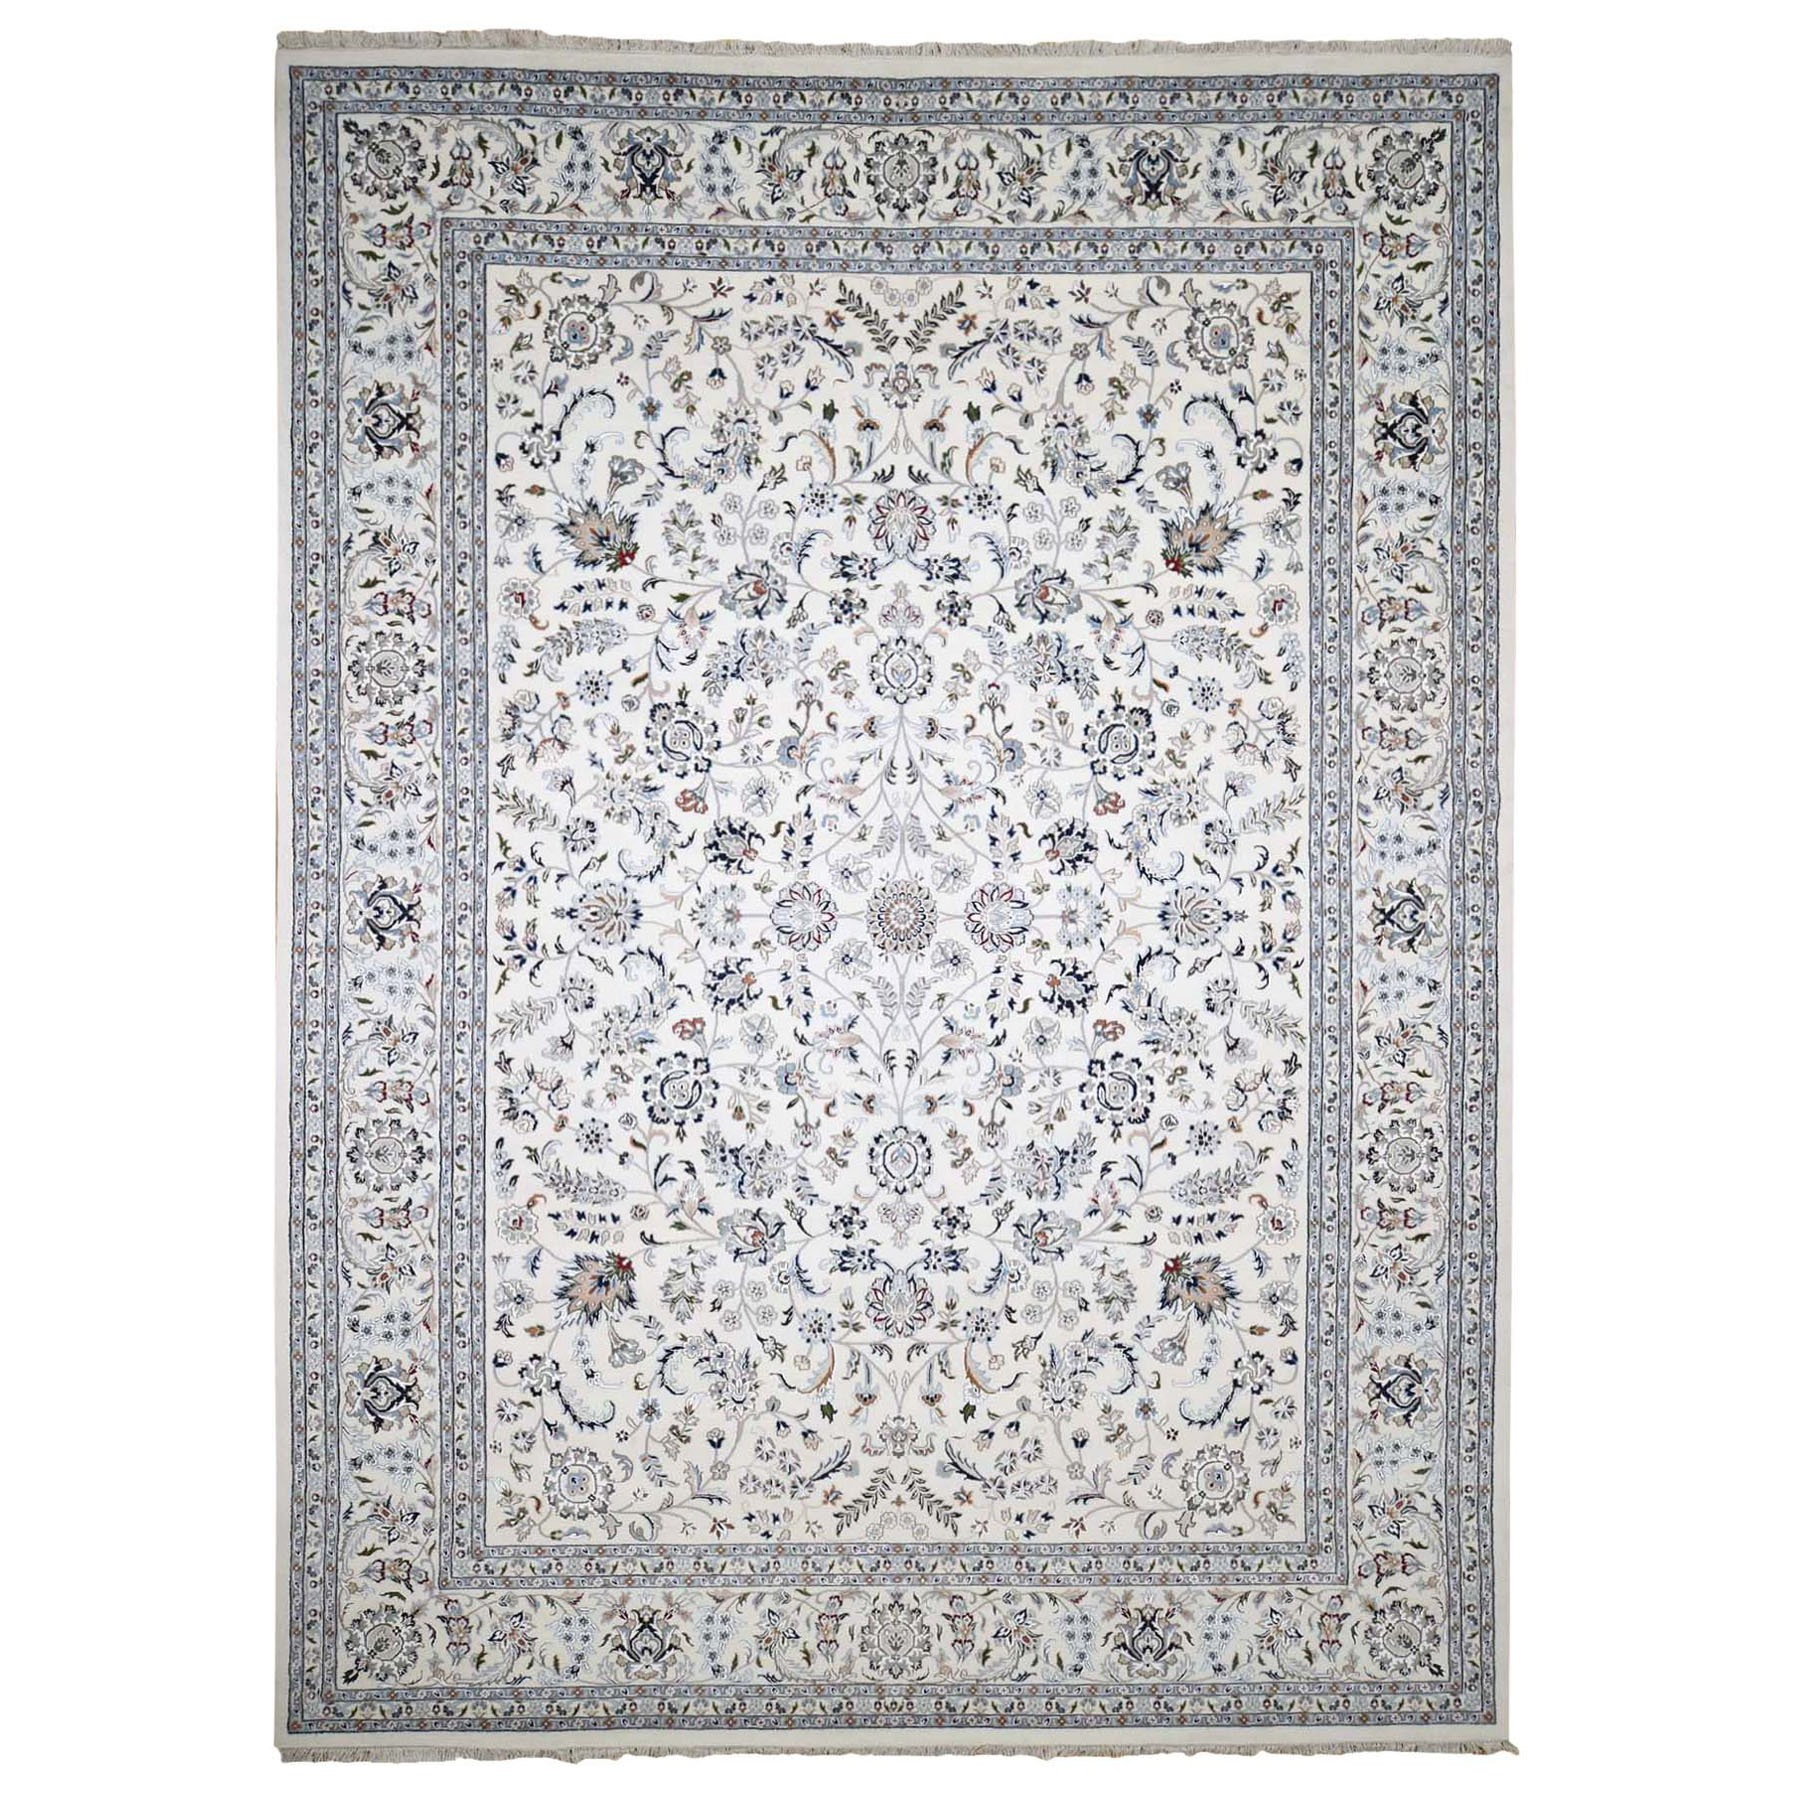 10'x14' Ivory Wool and Silk 250 KPSI All Over Design Nain Hand-Knotted Oriental Rug 48801